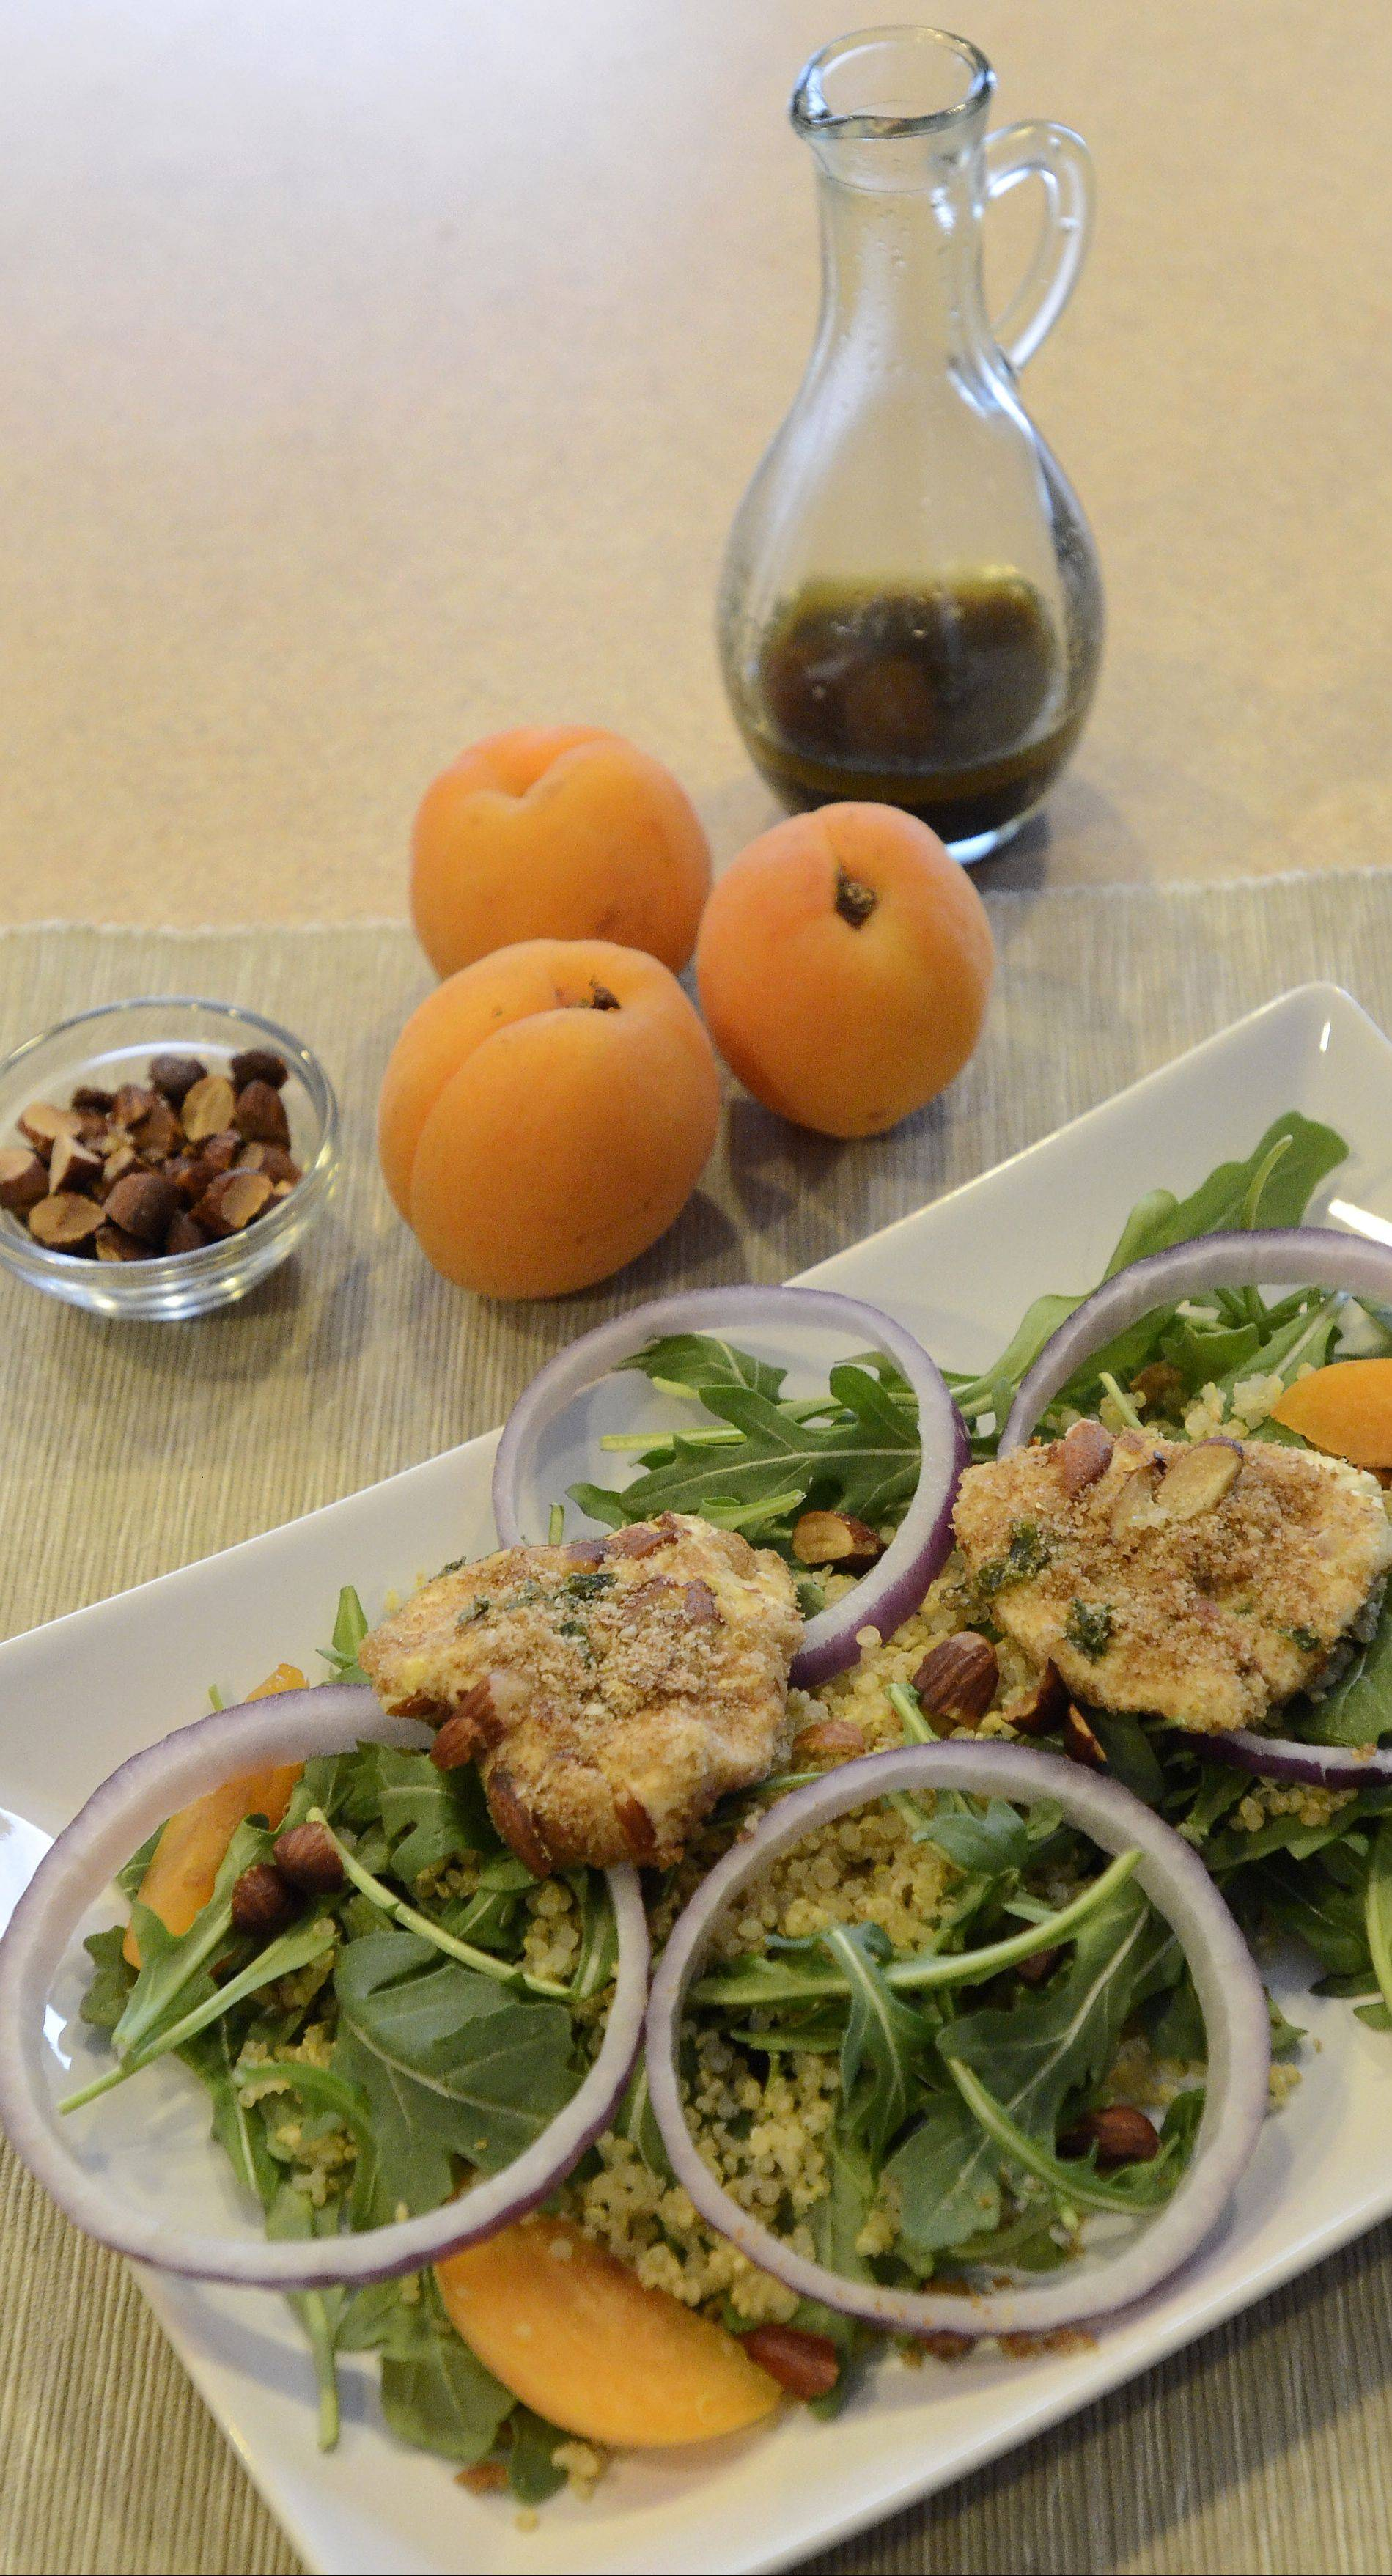 Eat right, live well: Arugula, apricots, almonds add excitment to spring salads